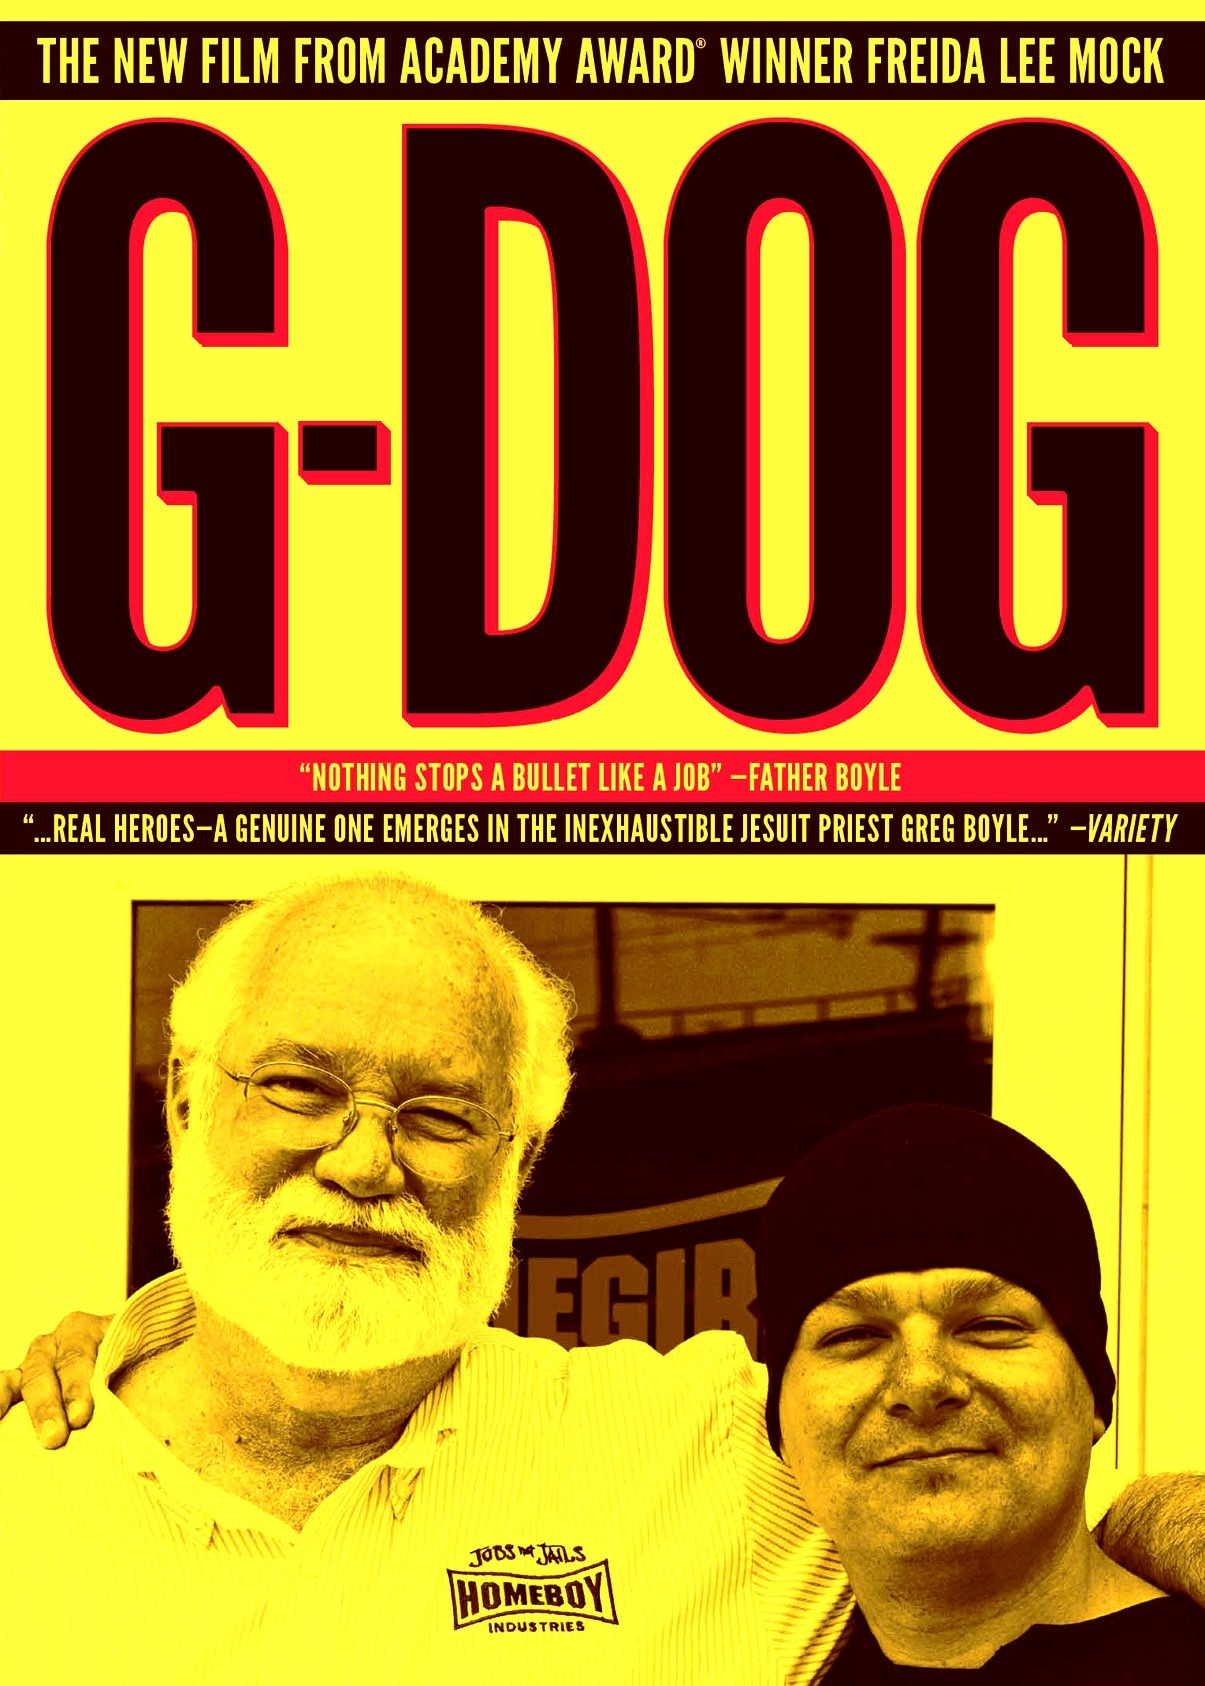 Homeboy Industries To D 233 But G Dog Film By Academy Award Winning Filmmaker The Source